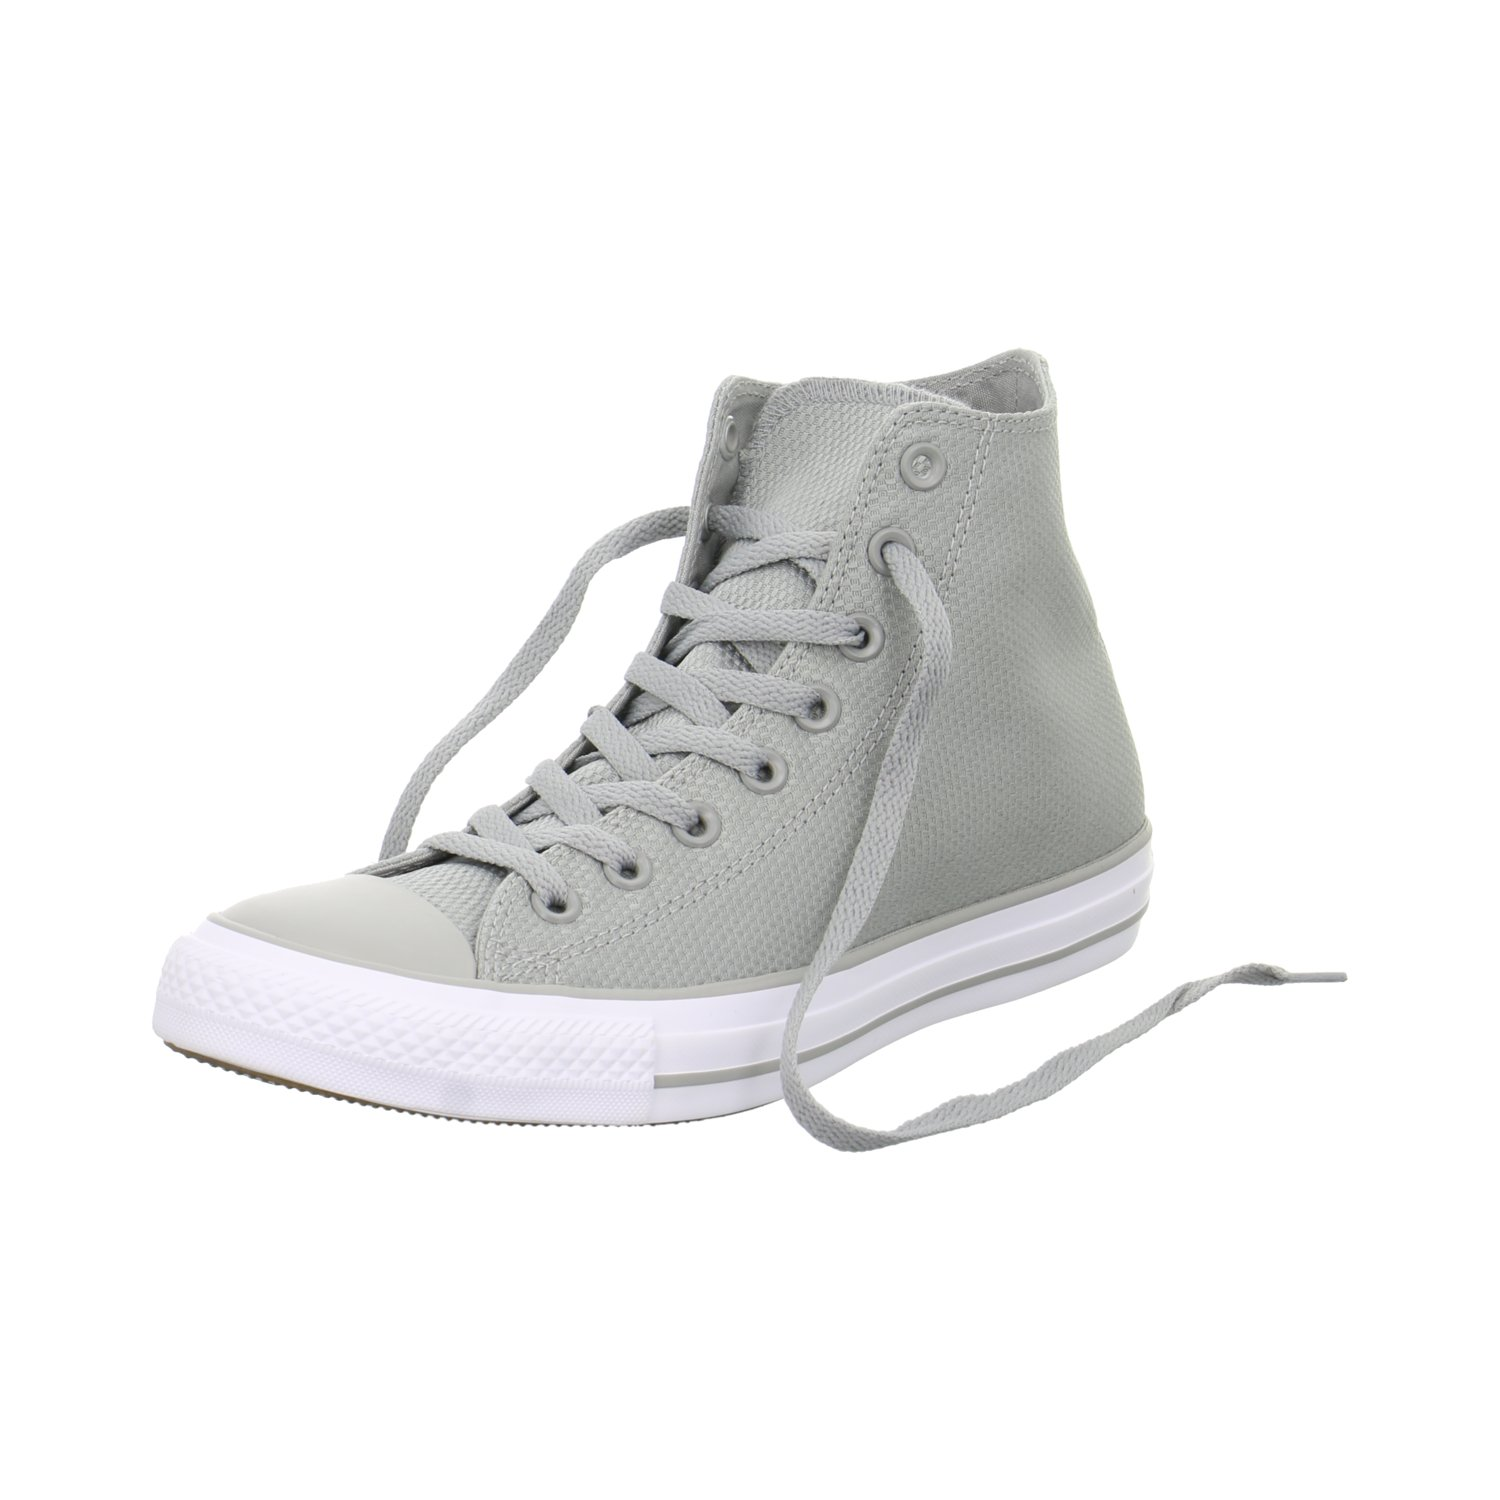 CONVERSE - CT AS HI 155414C dolphin white: Amazon.es: Deportes y aire libre